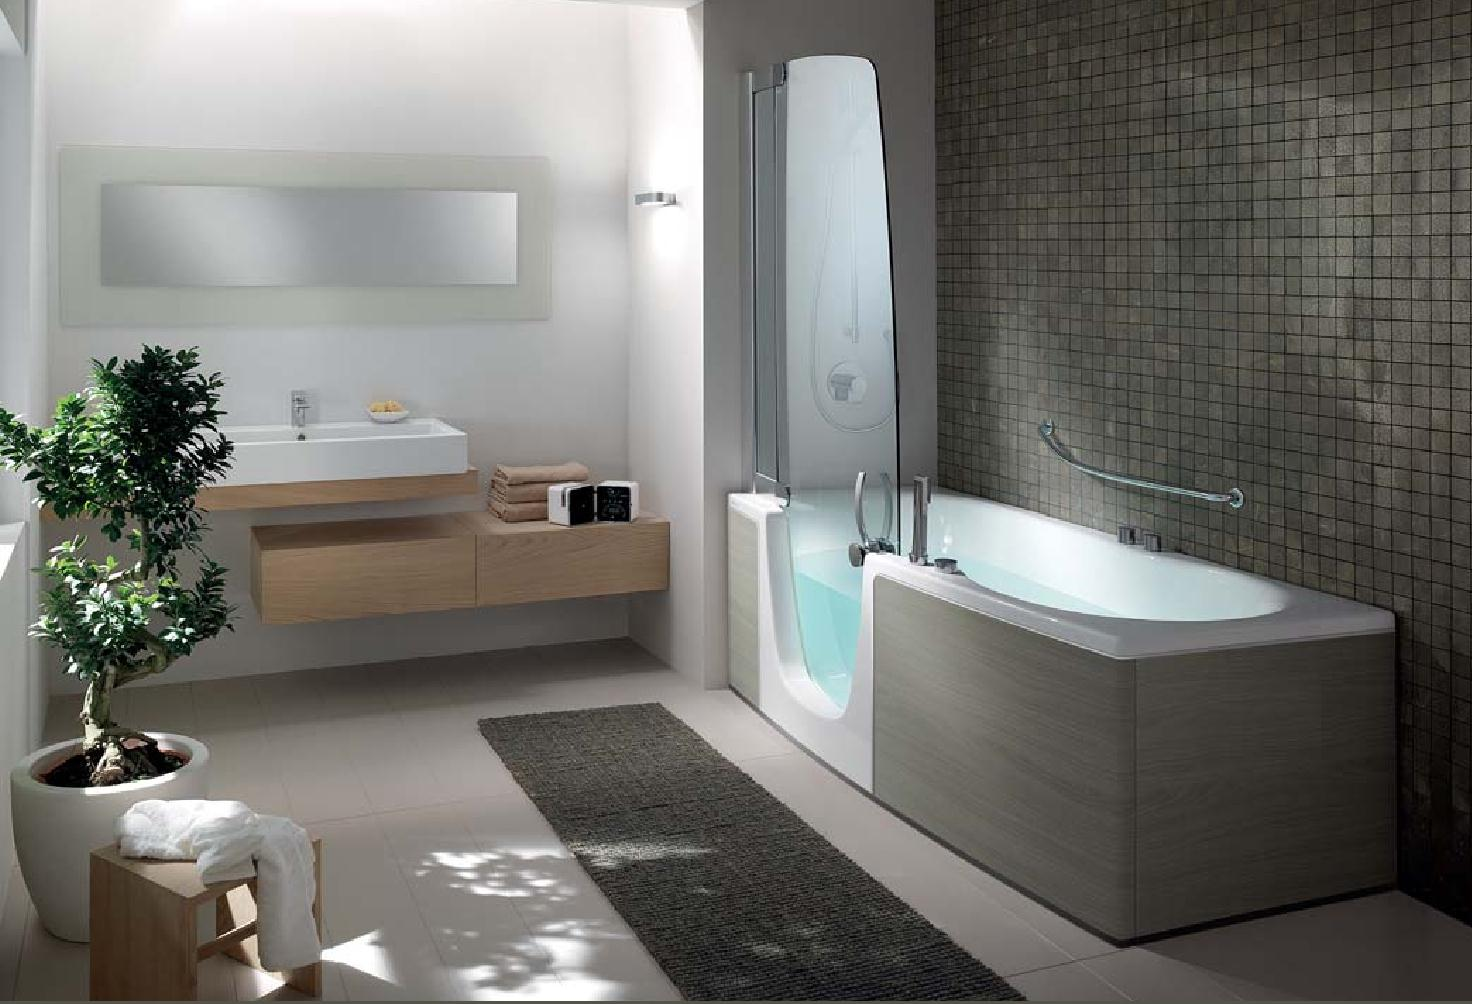 petite salle de bain avec baignoire dangle. Black Bedroom Furniture Sets. Home Design Ideas